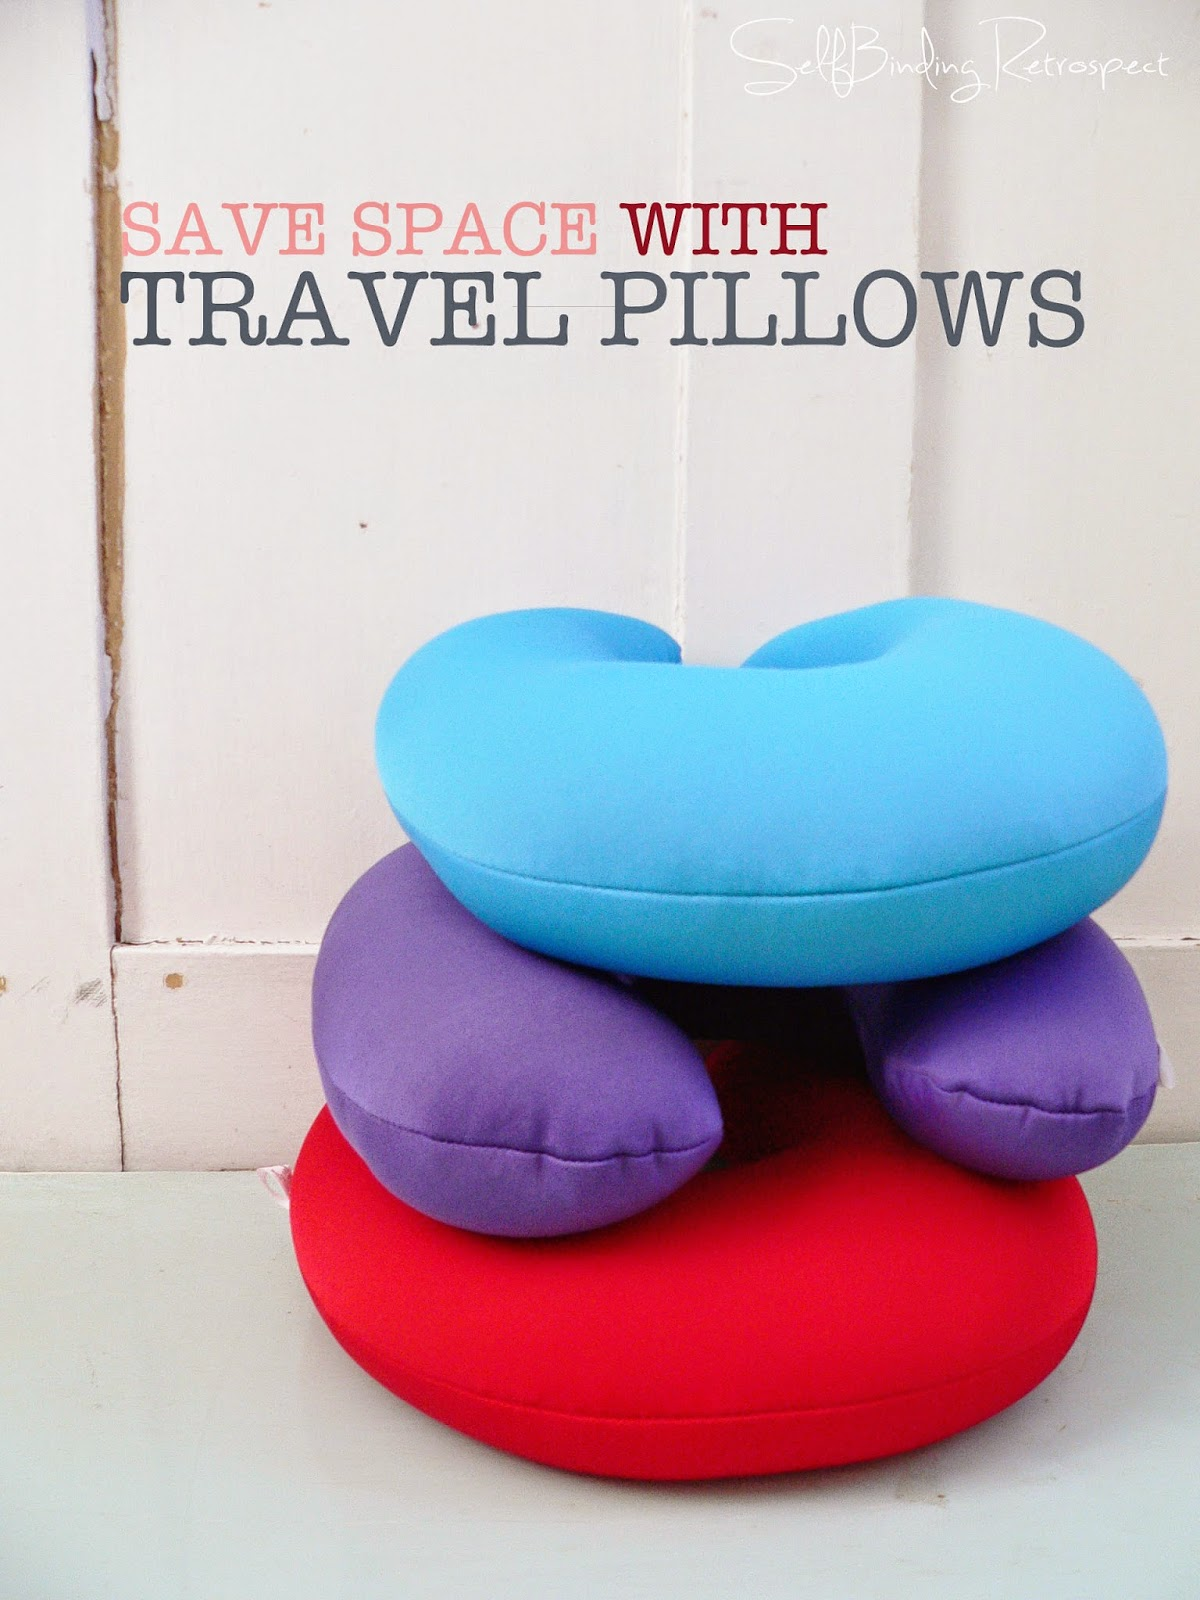 save road trip space with travl pillows